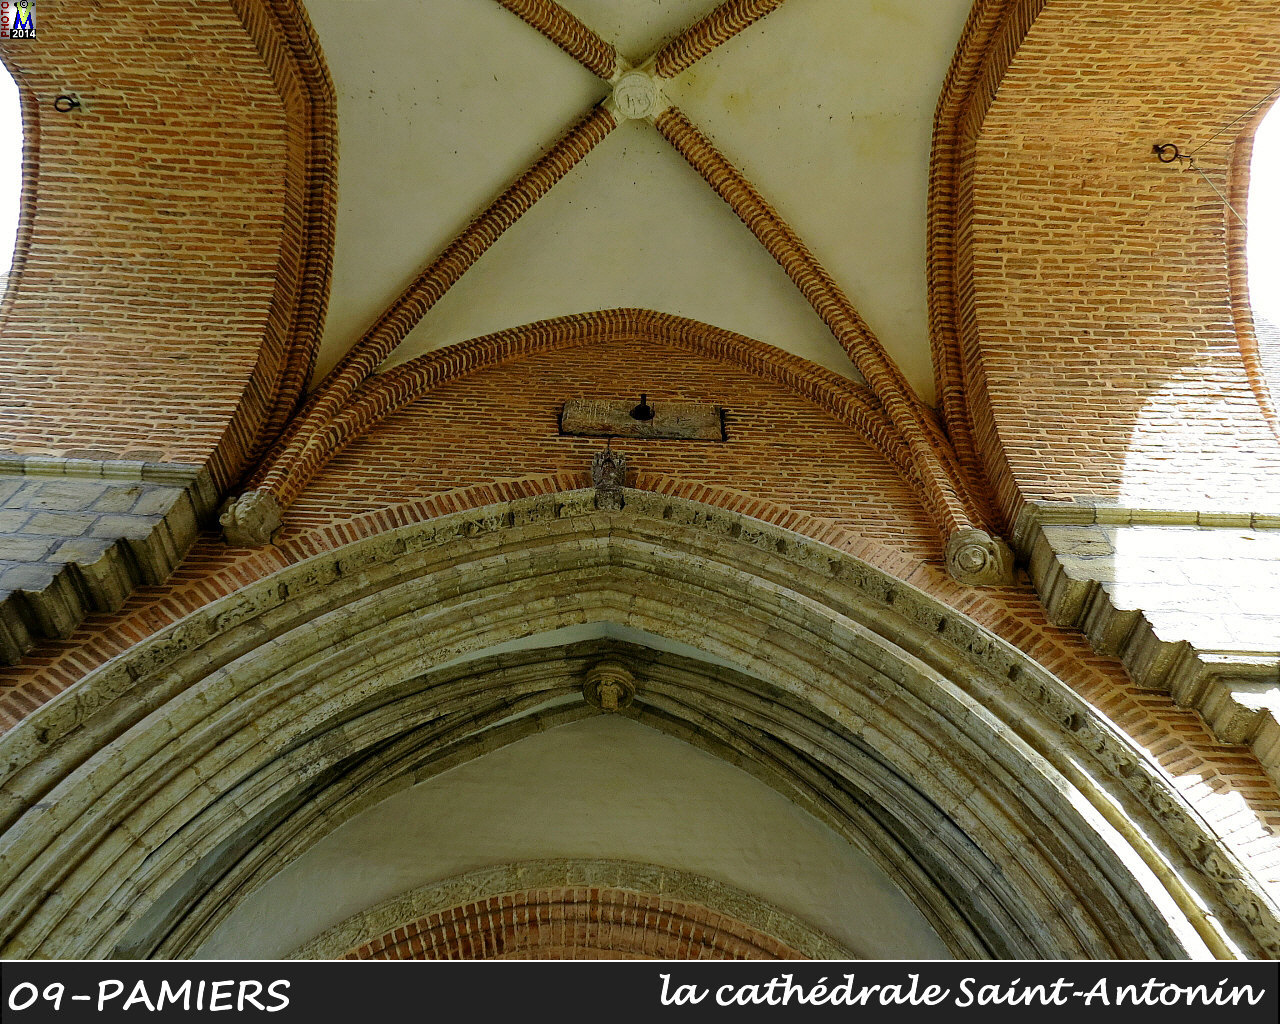 09PAMIERS_cathedrale_130.jpg